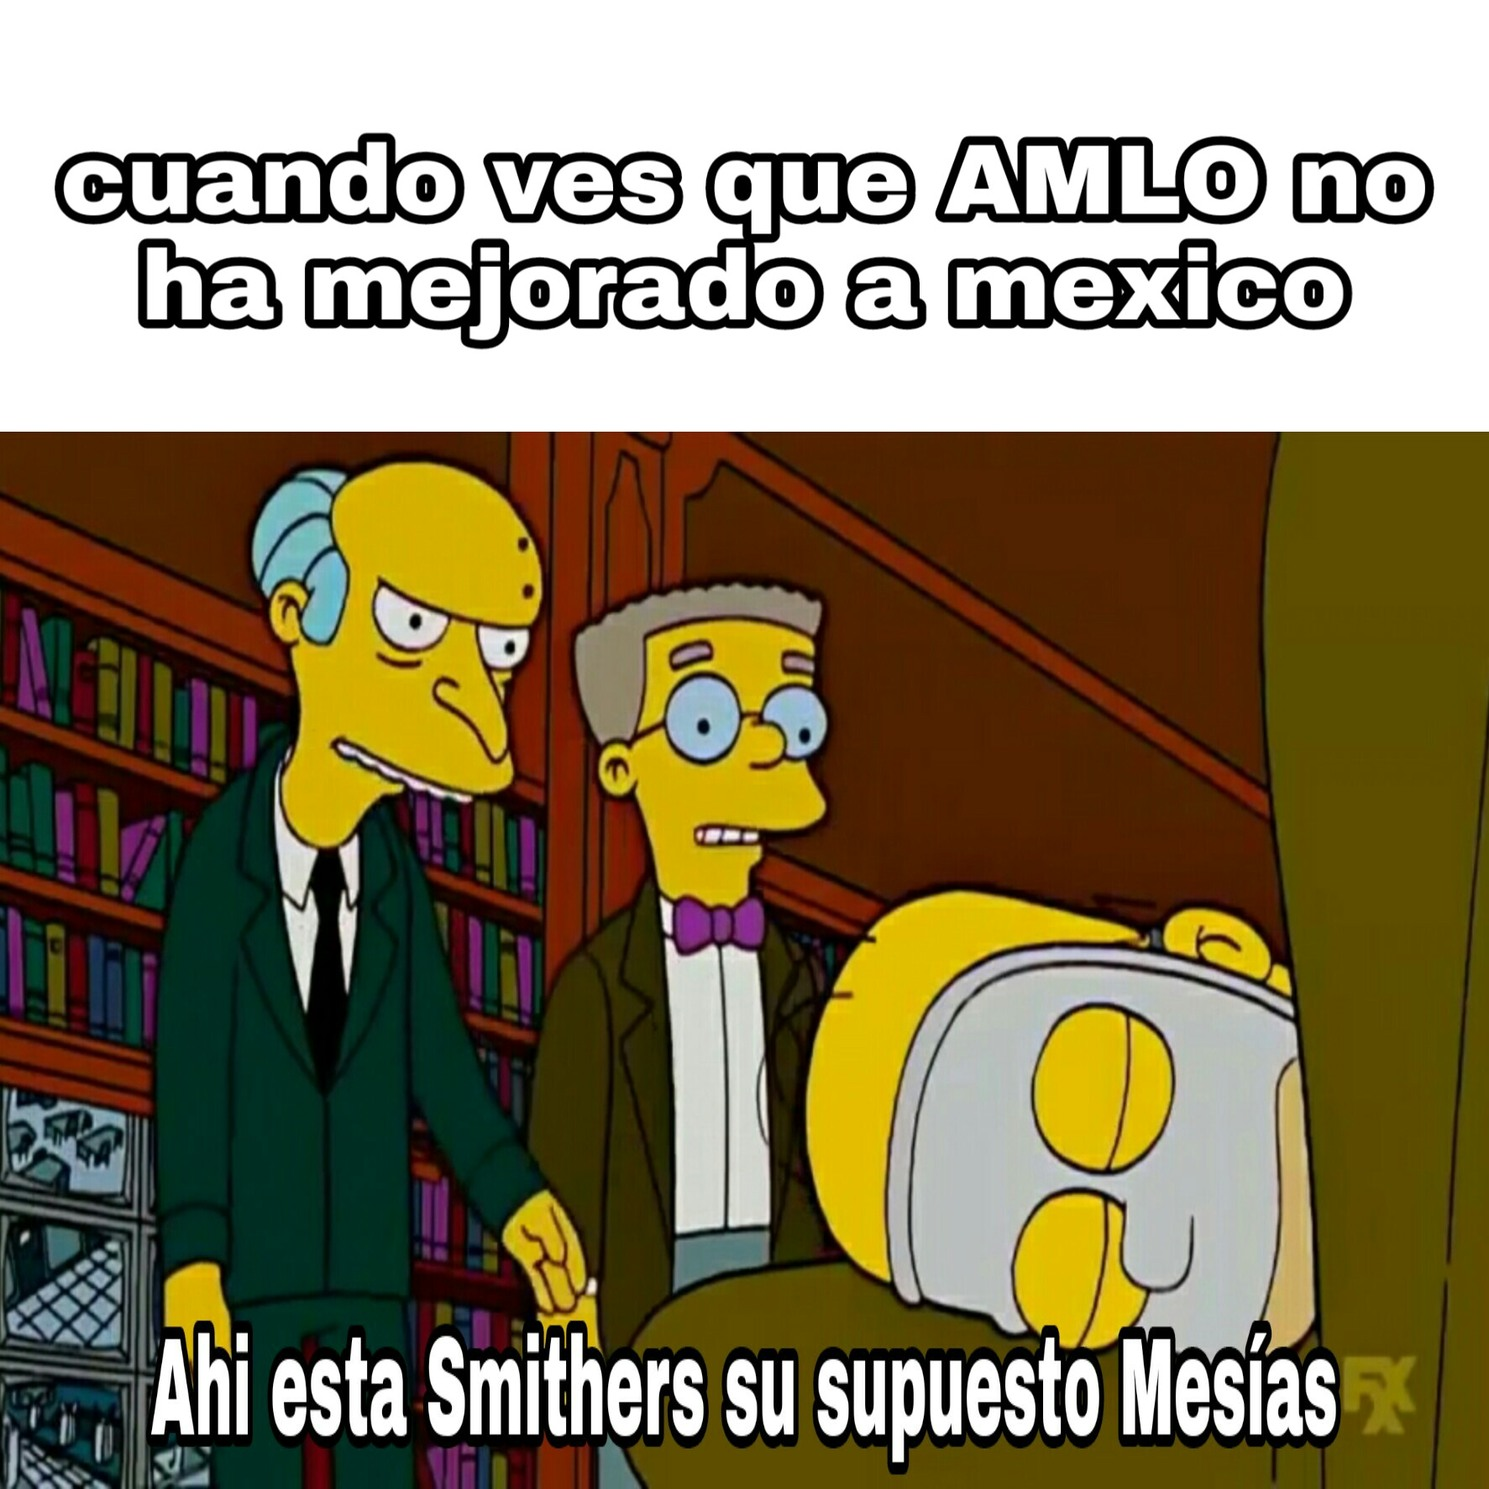 Del simpson total - meme